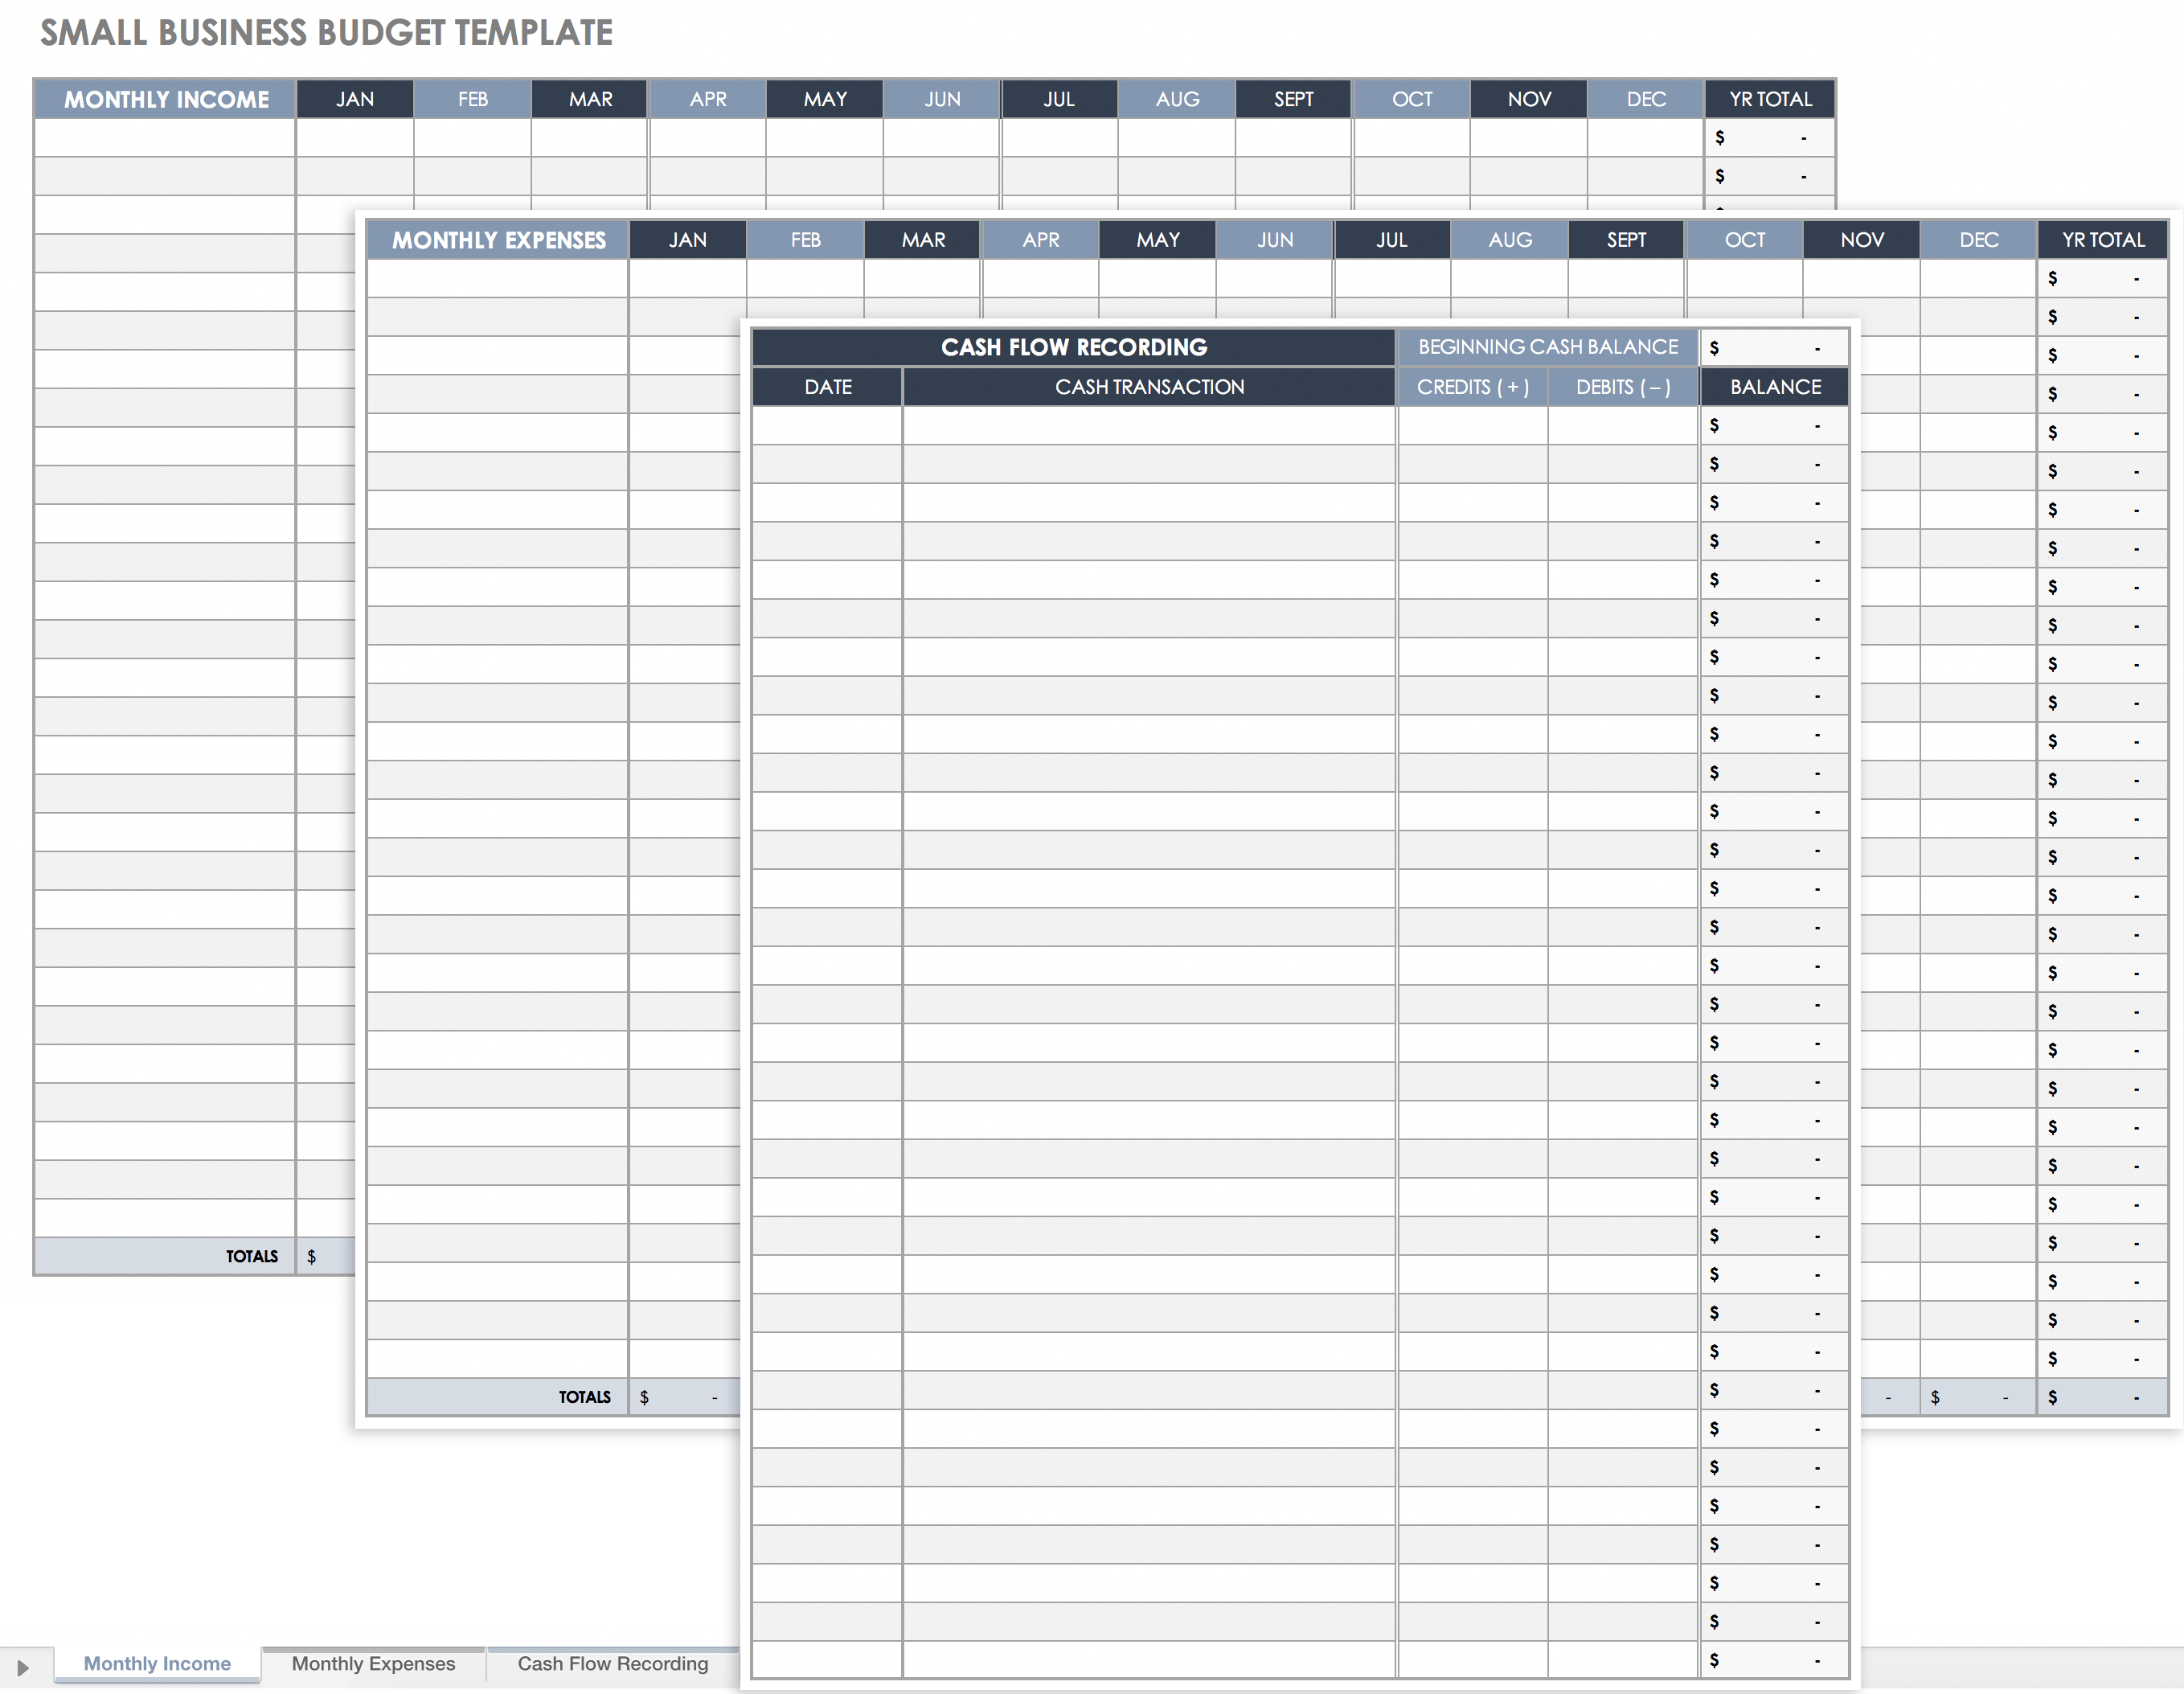 Small Business Budget Template